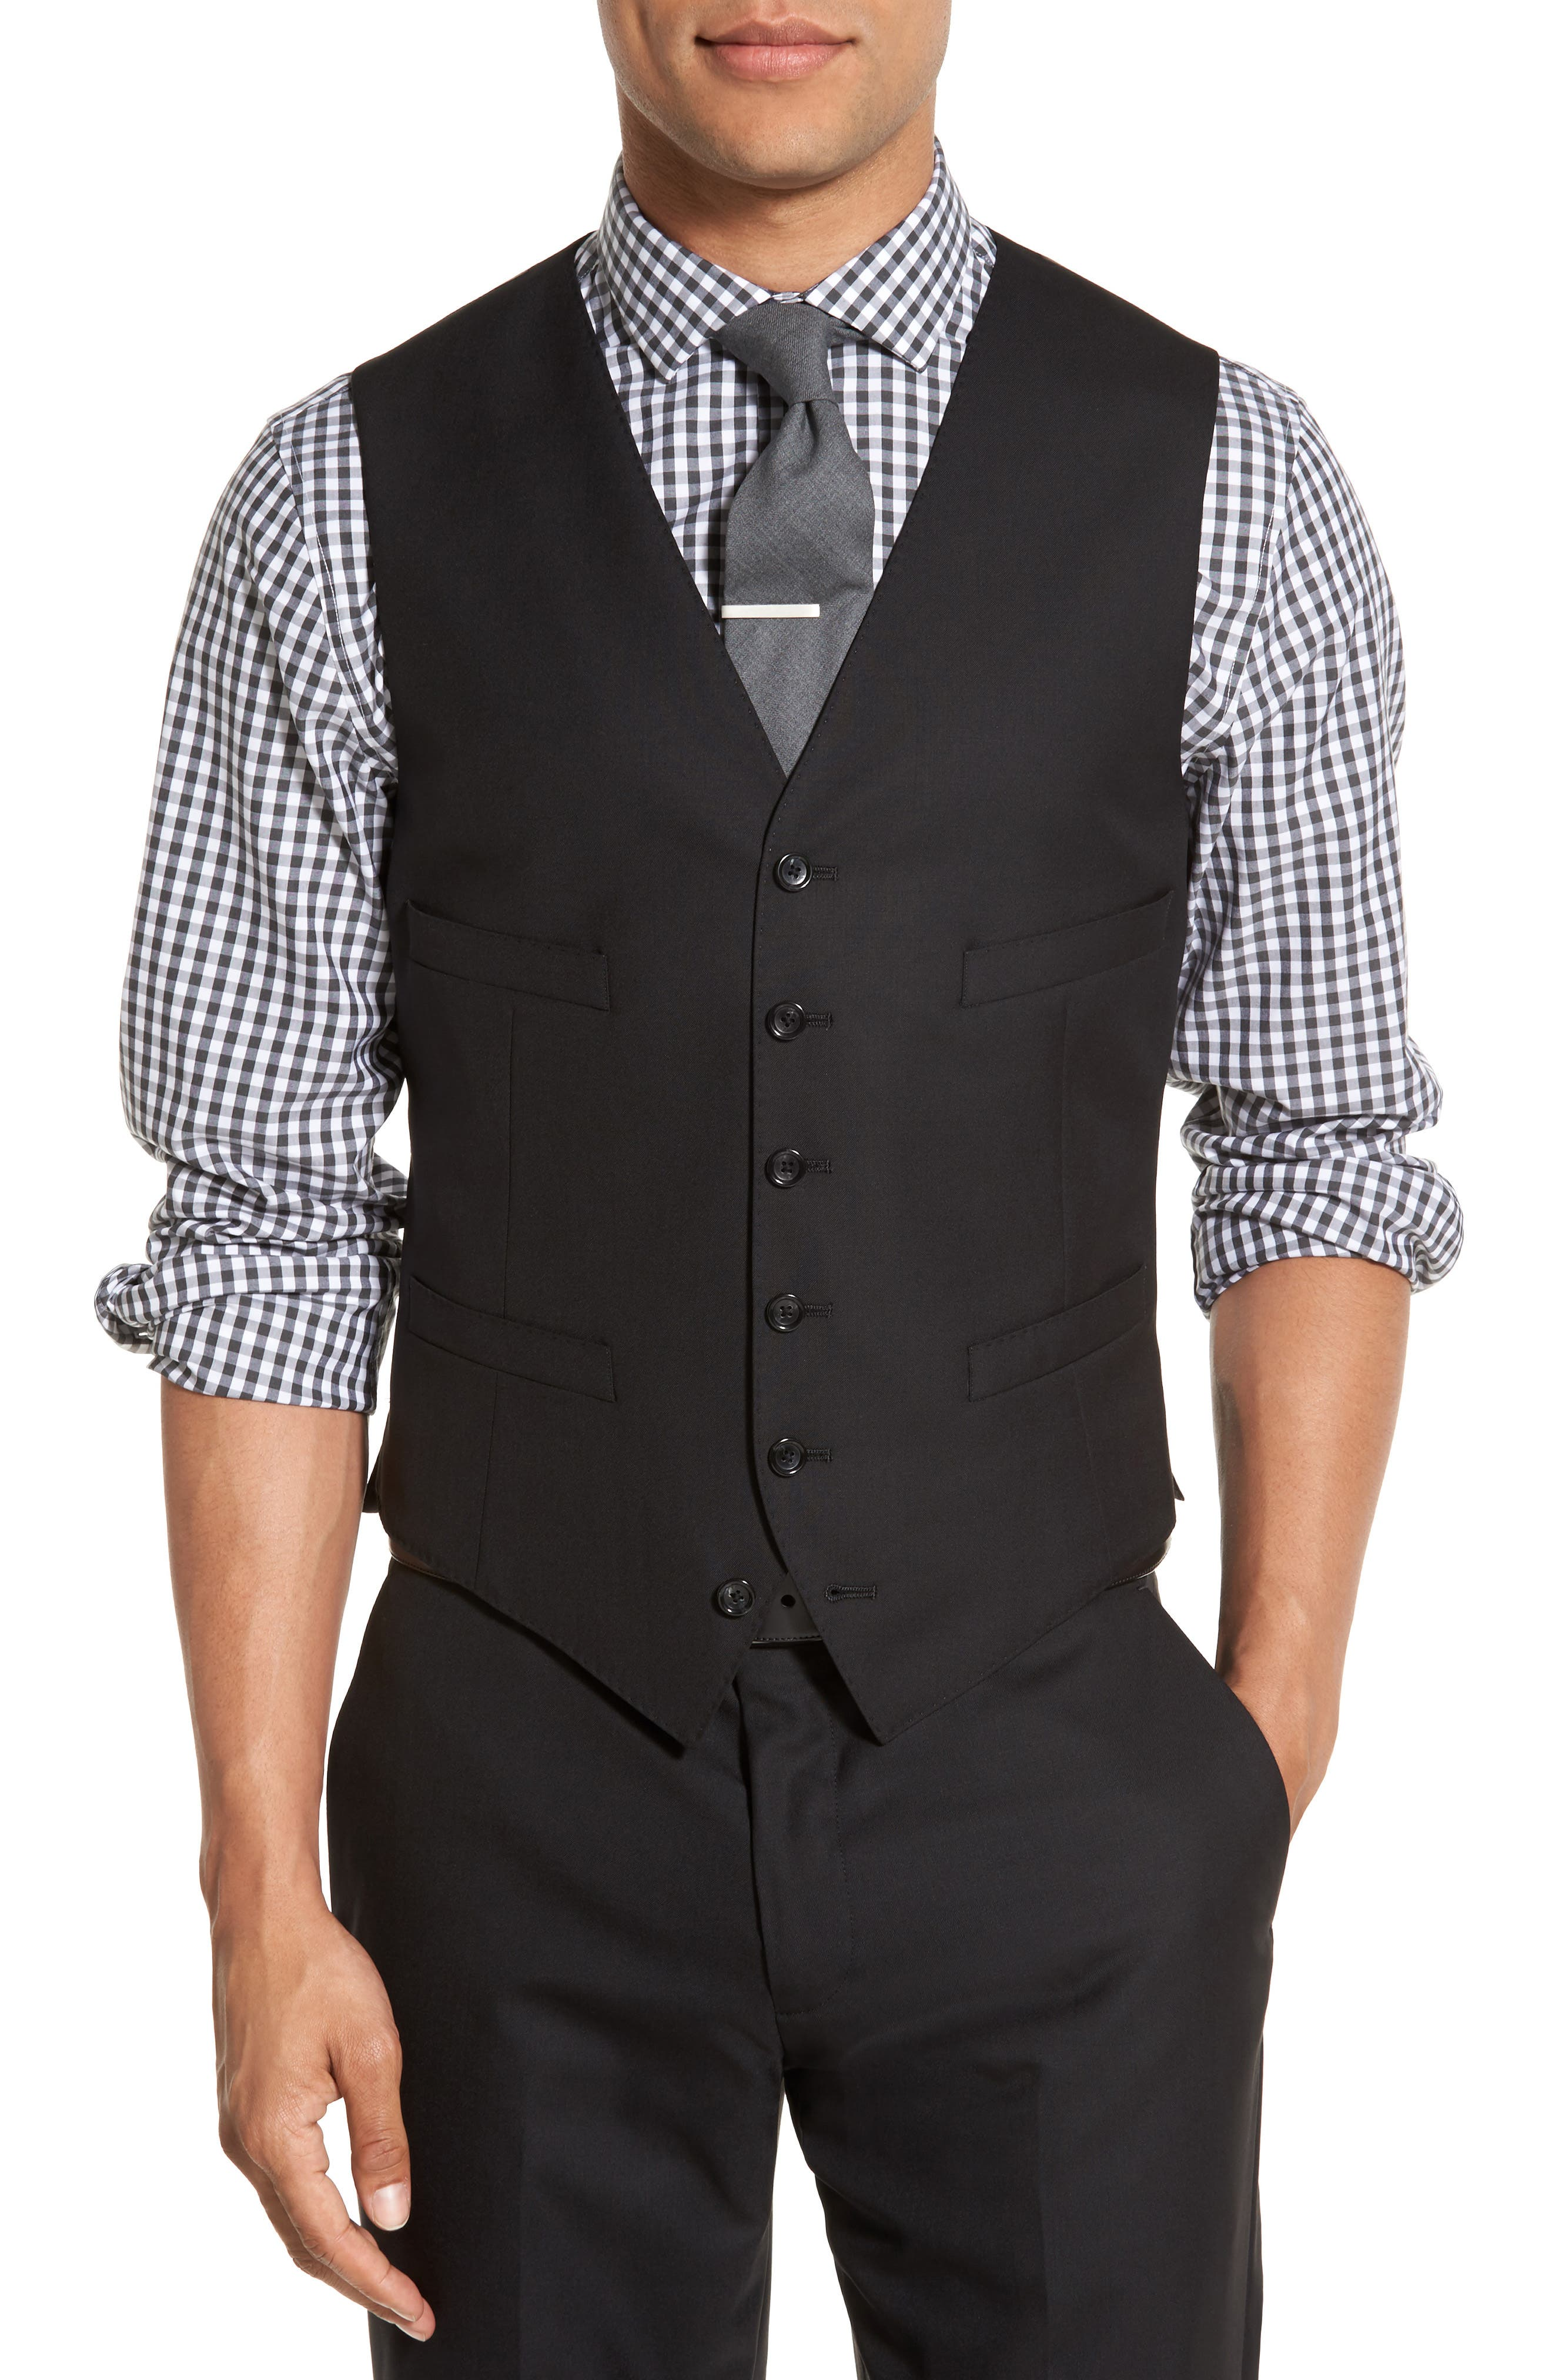 Alternate Image 1 Selected - J.Crew Ludlow Trim Fit Solid Wool Vest